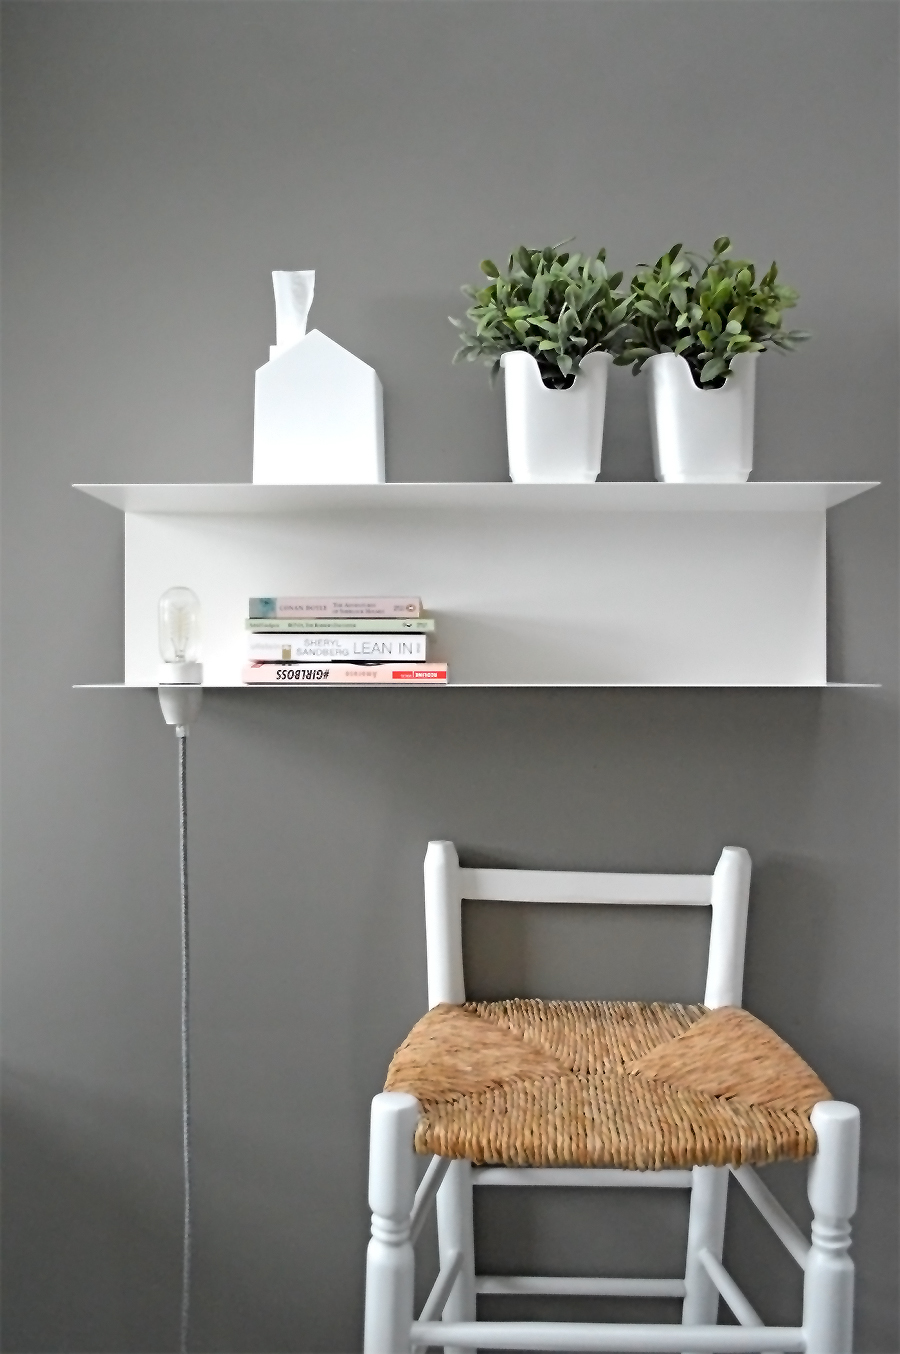 BEST IKEA HACK - YOUR FAVORITE IKEA HACKS ON ICHDESIGNER.COM